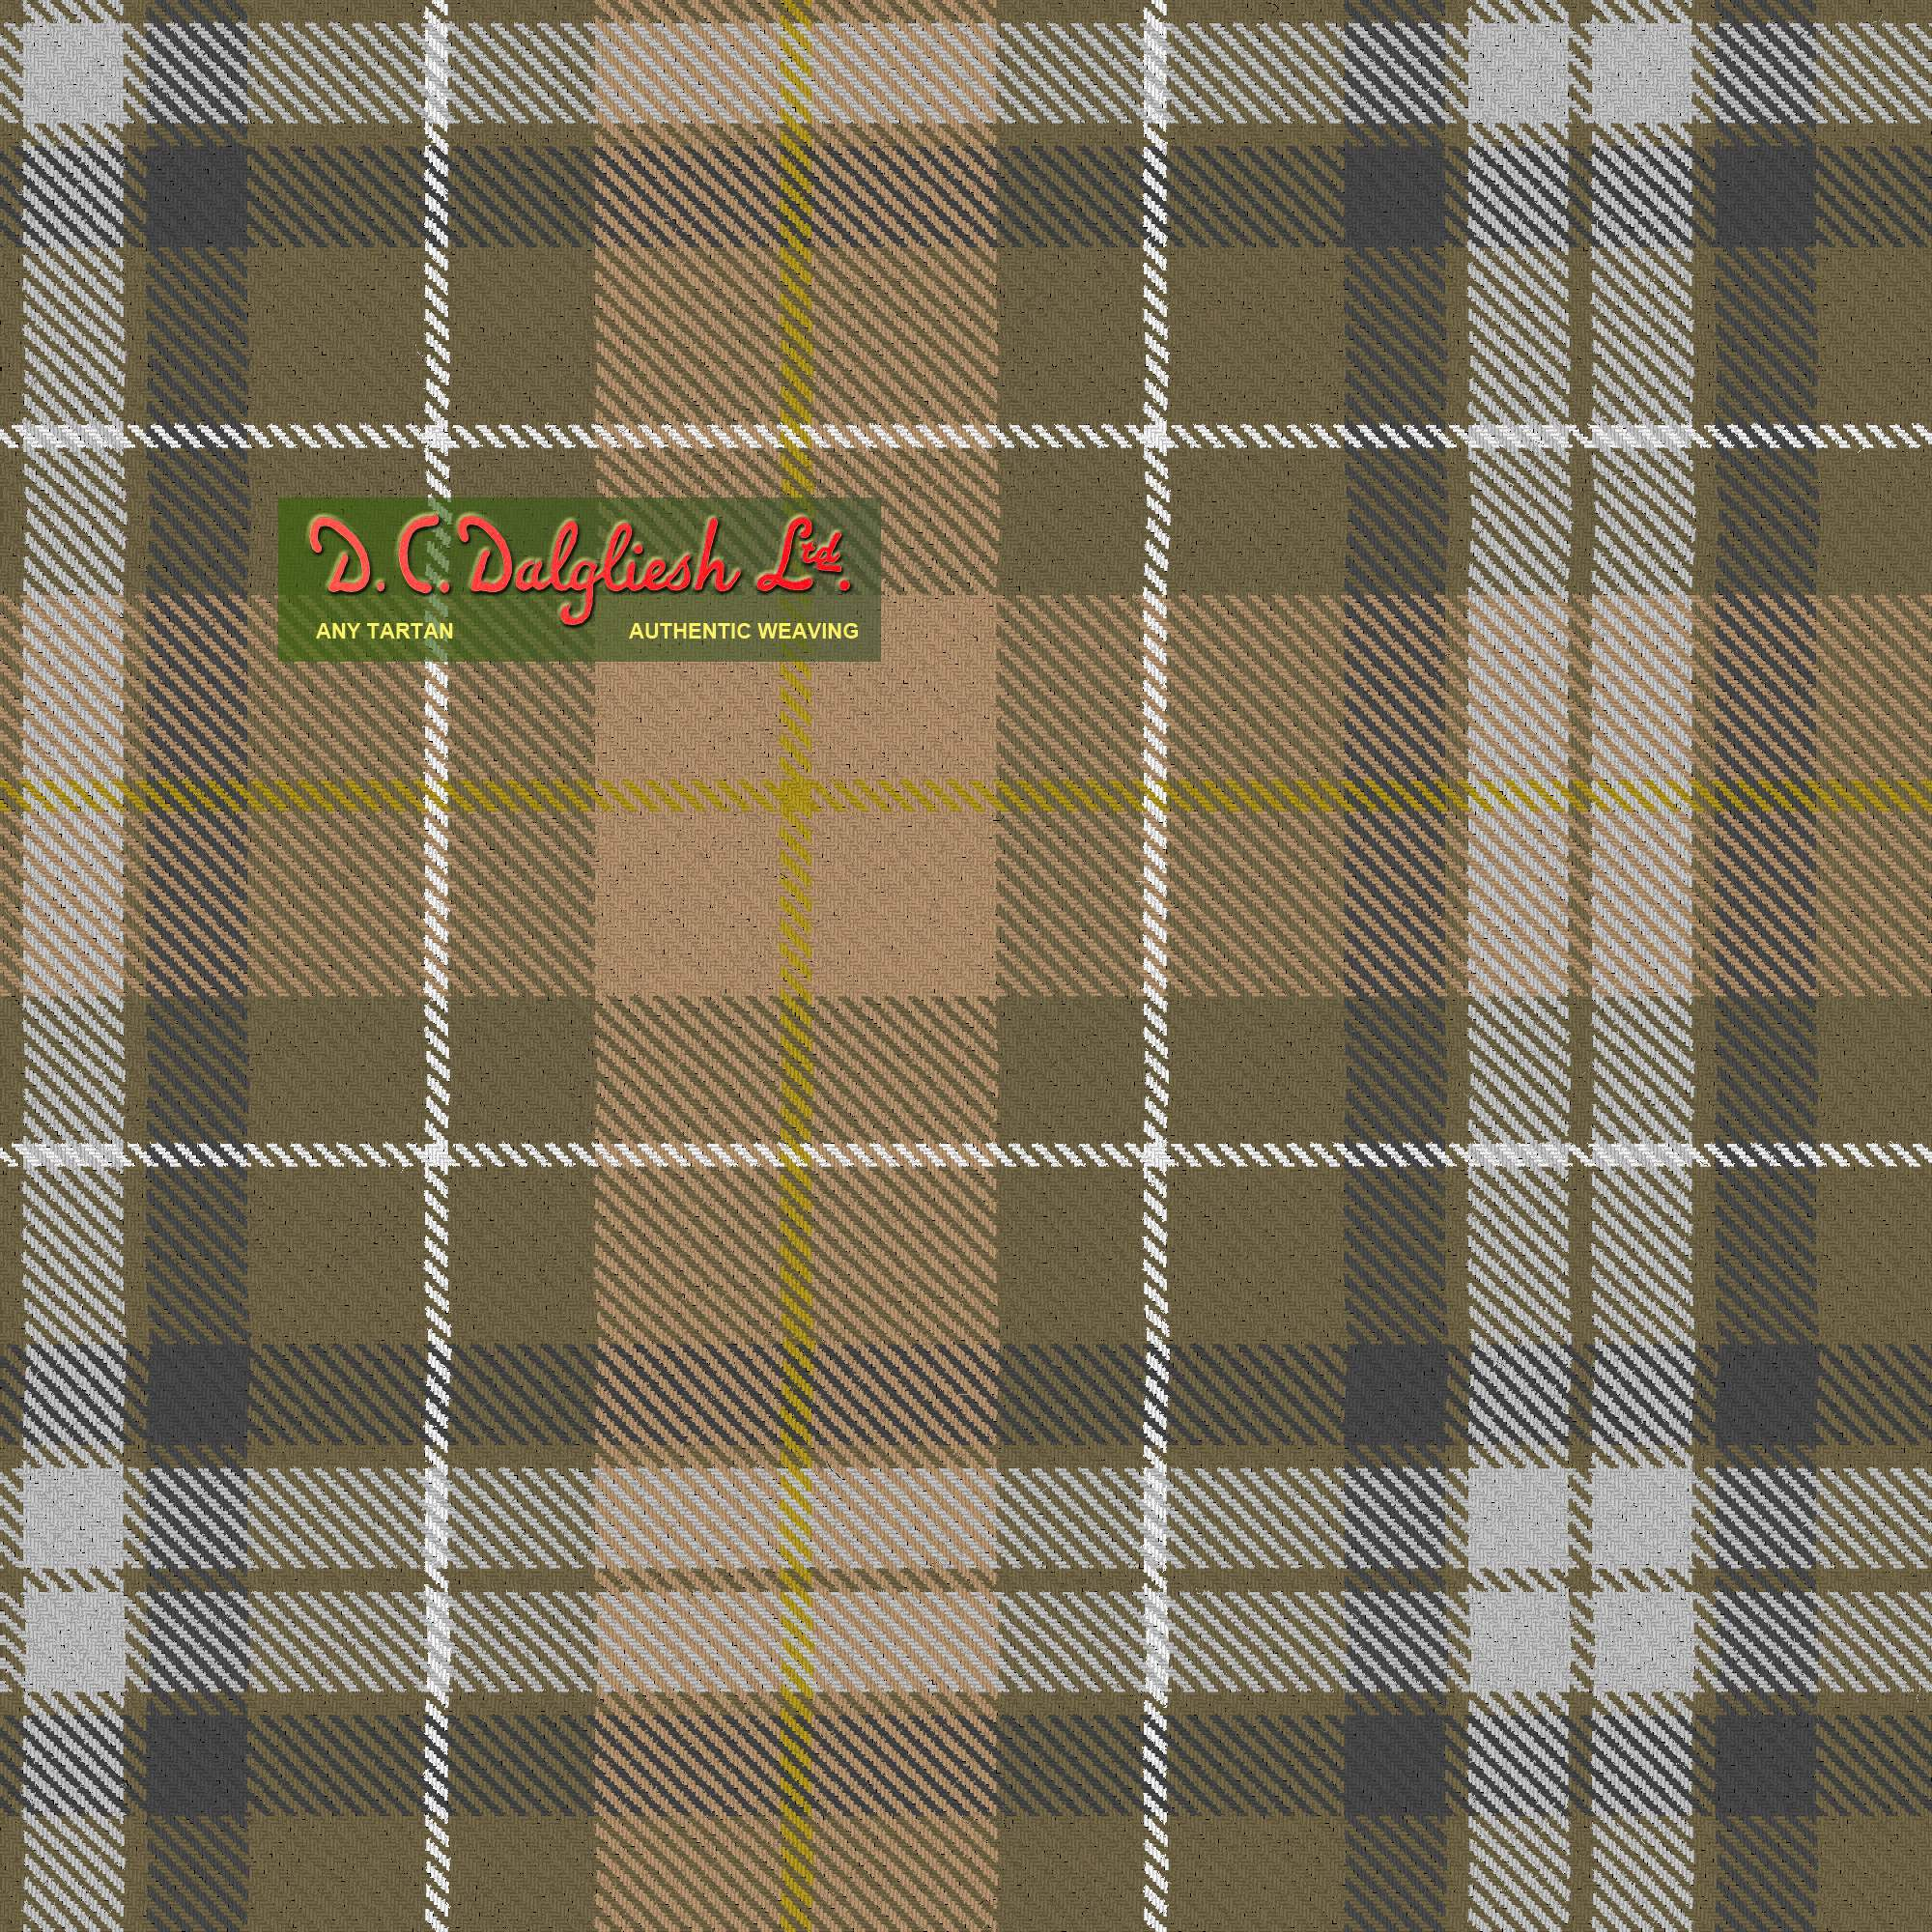 Teall of Teallach Clan (Reproduction Colours)